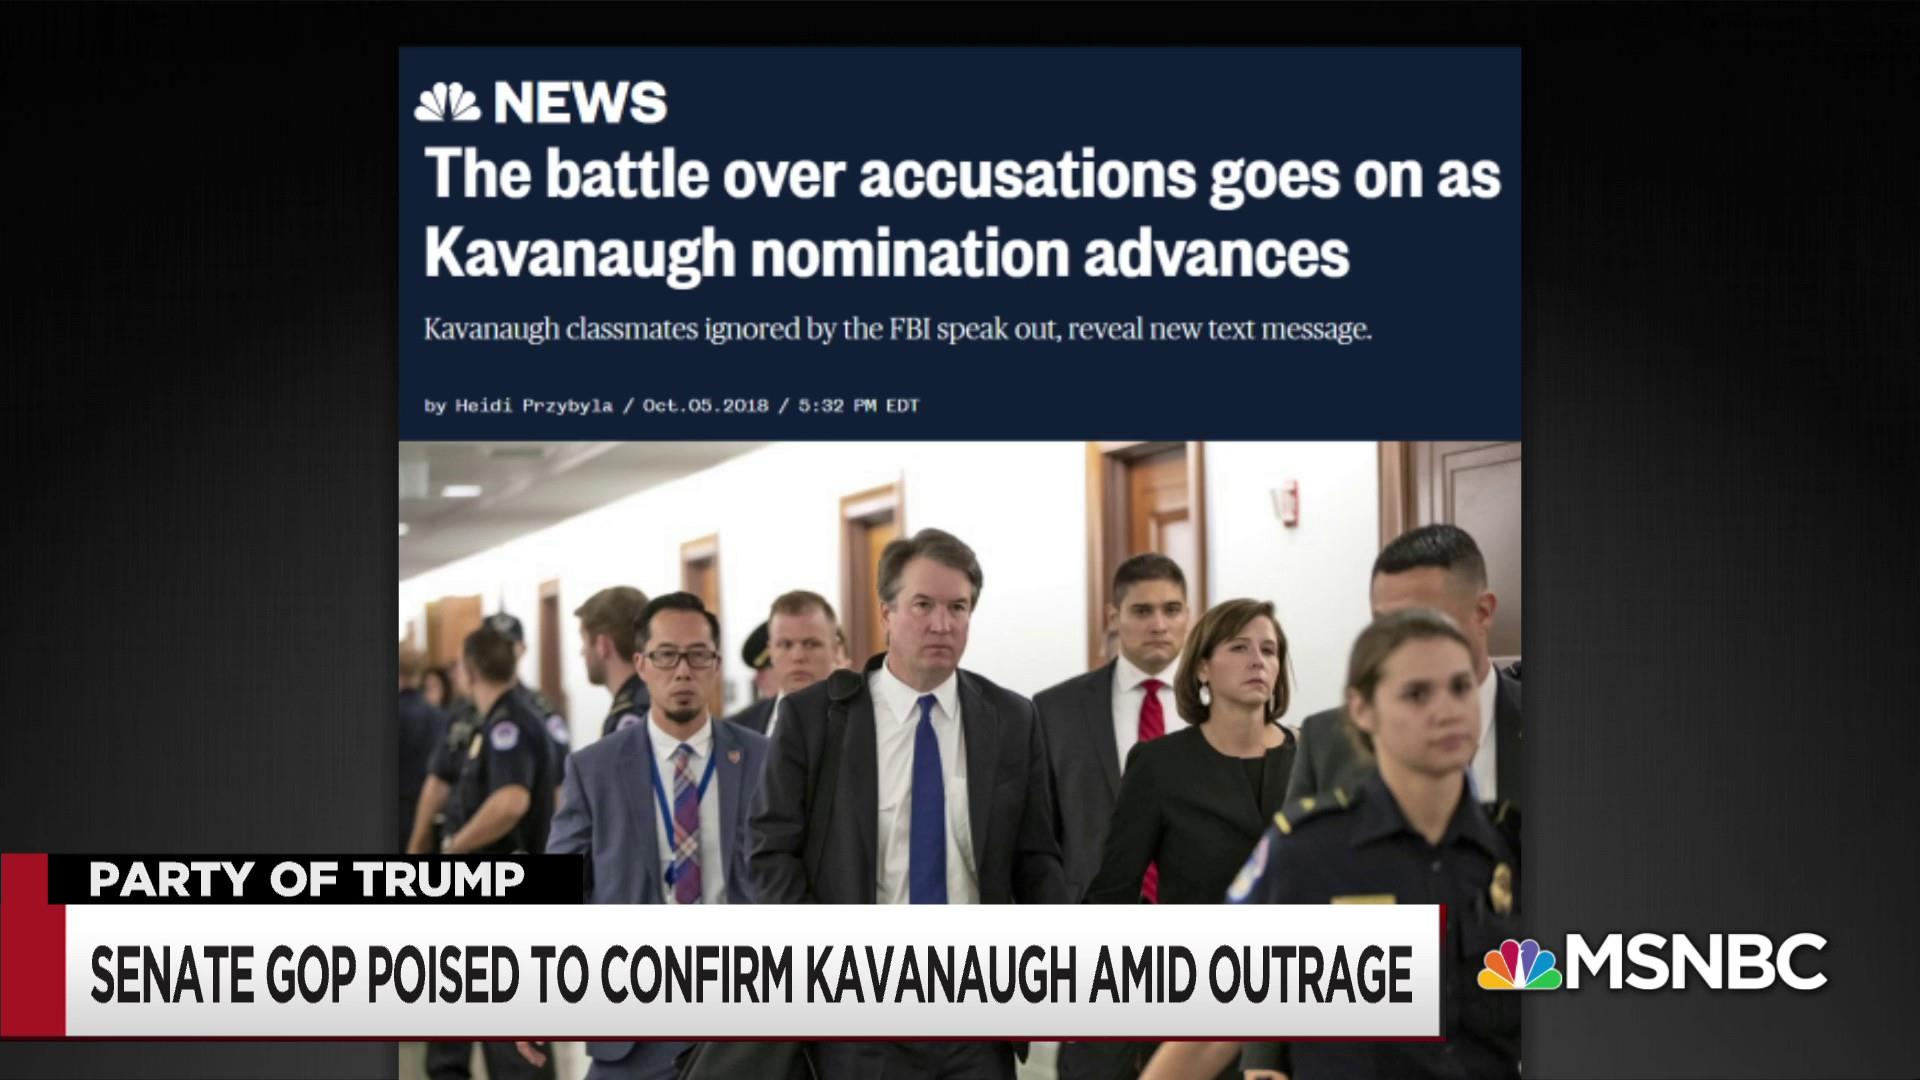 New evidence of a Kavanaugh cover up